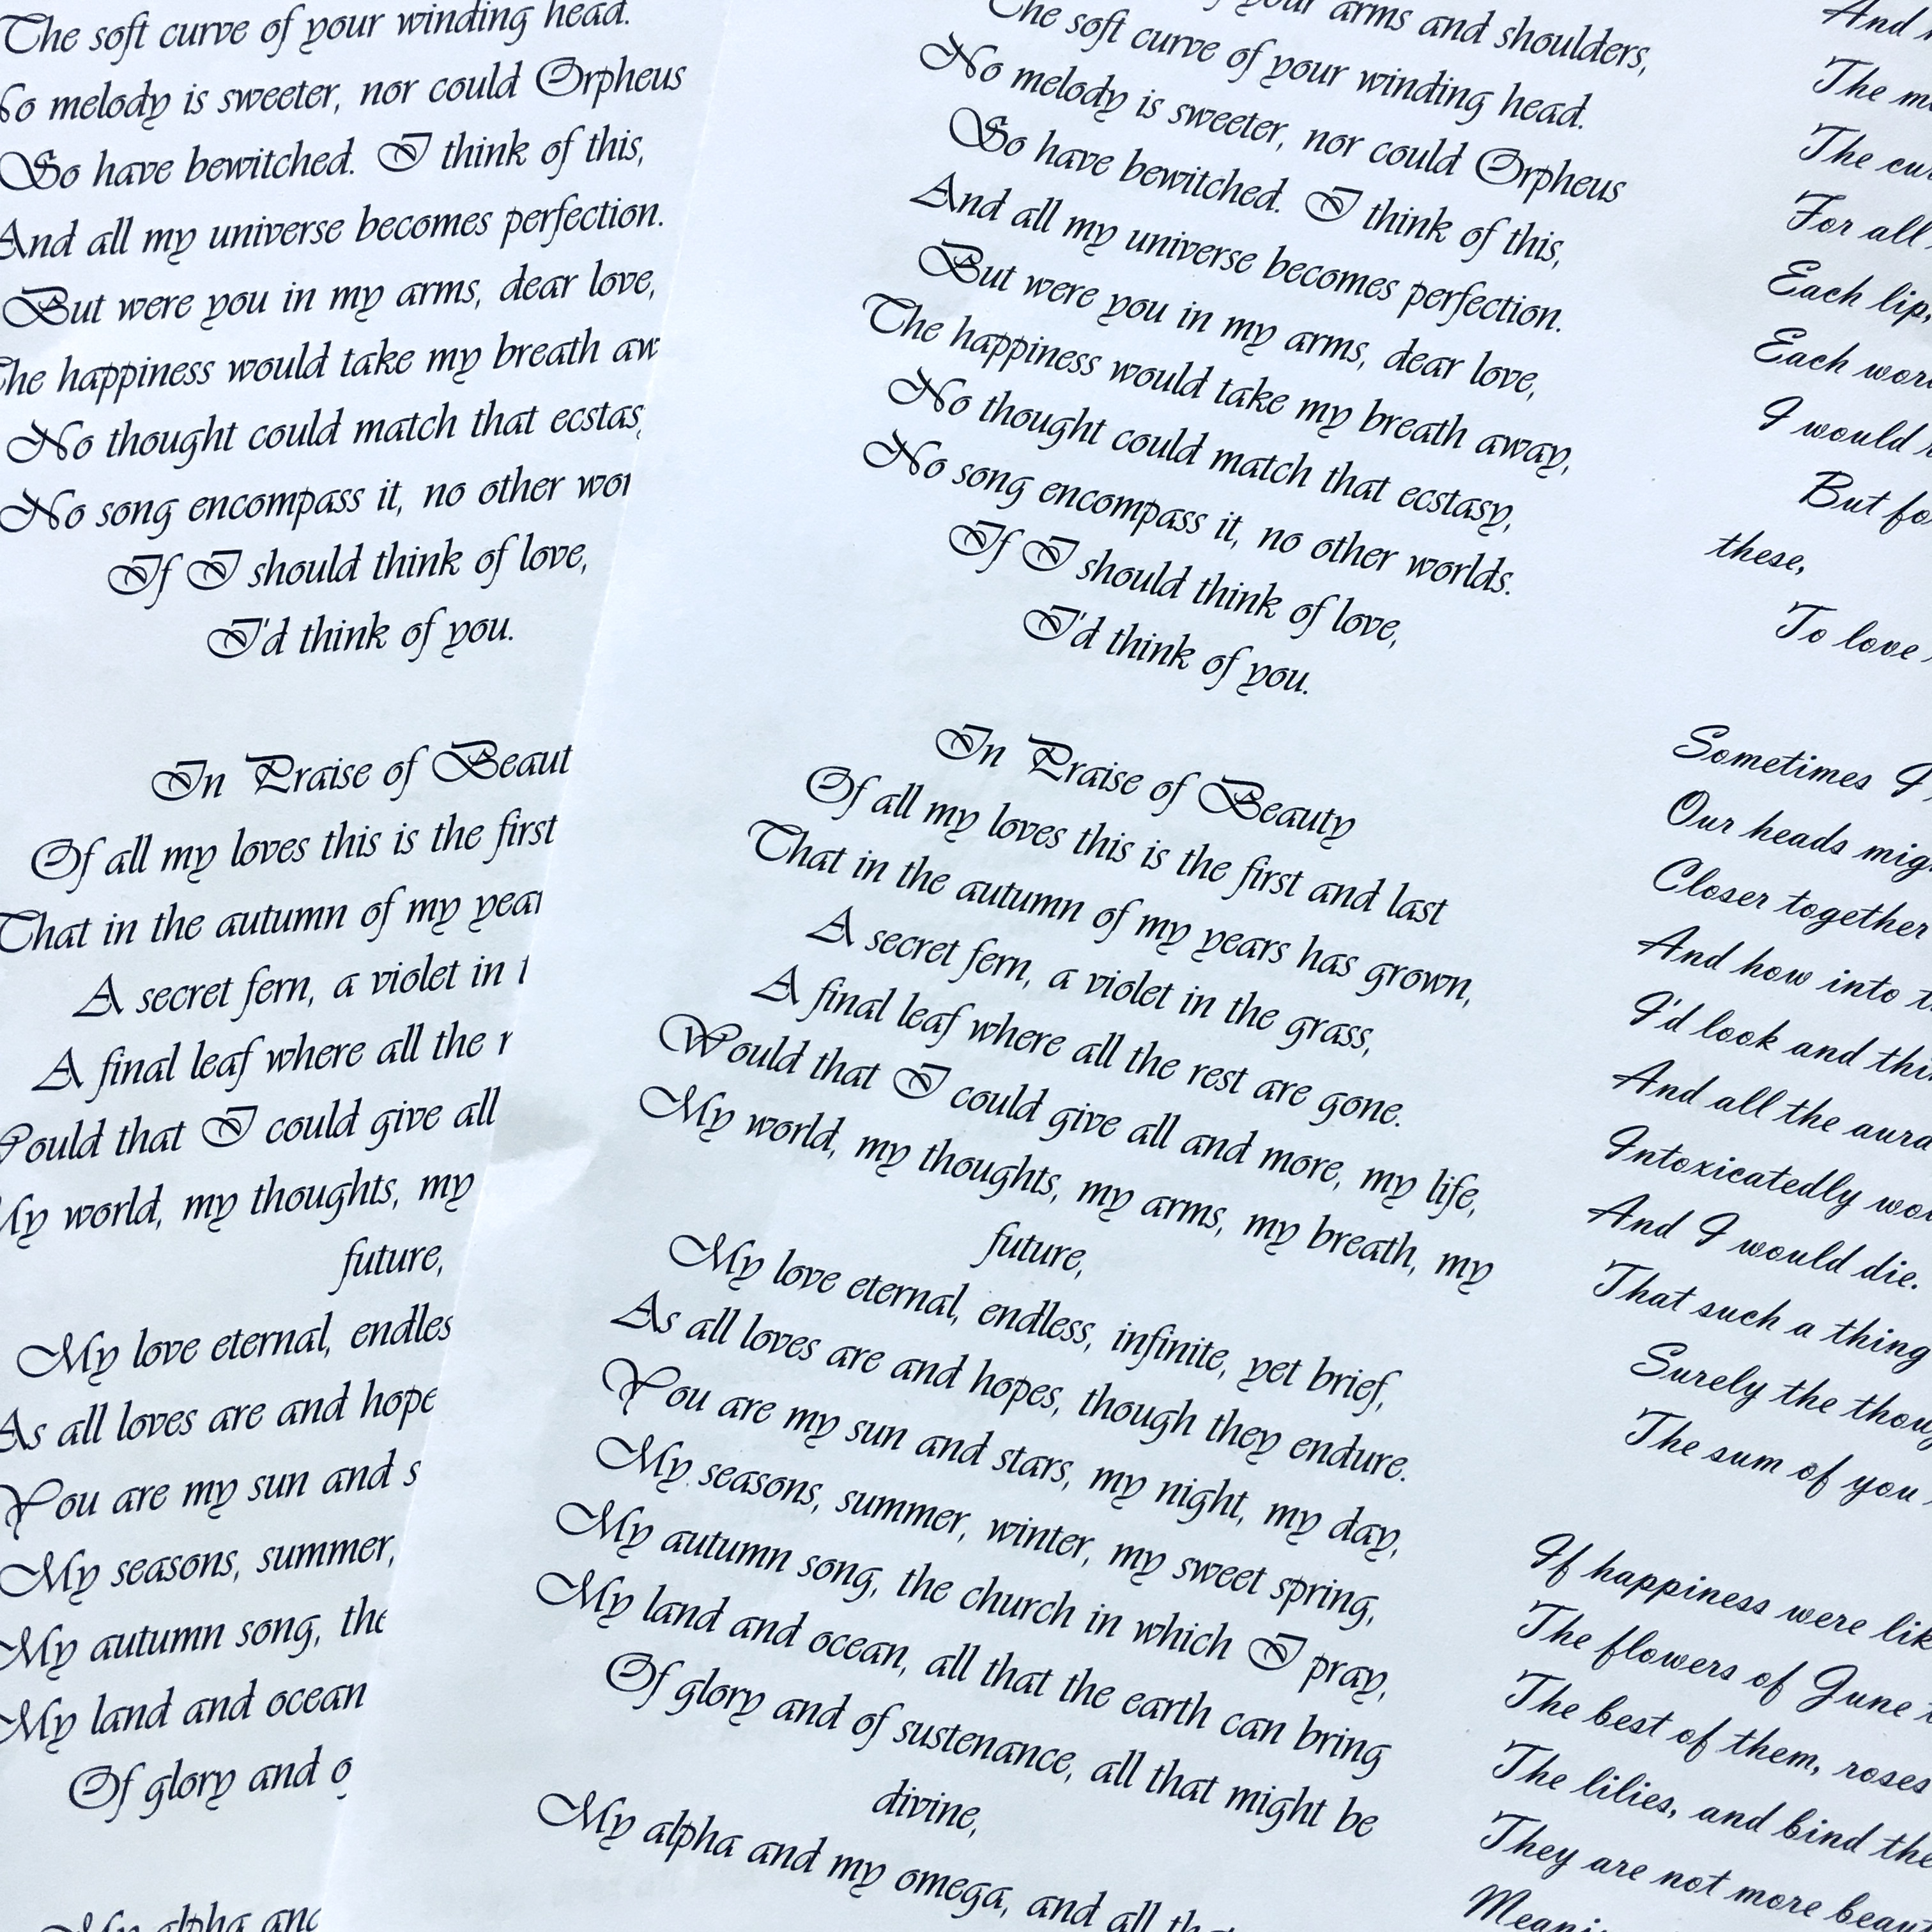 printed Shakespeare's sonnets